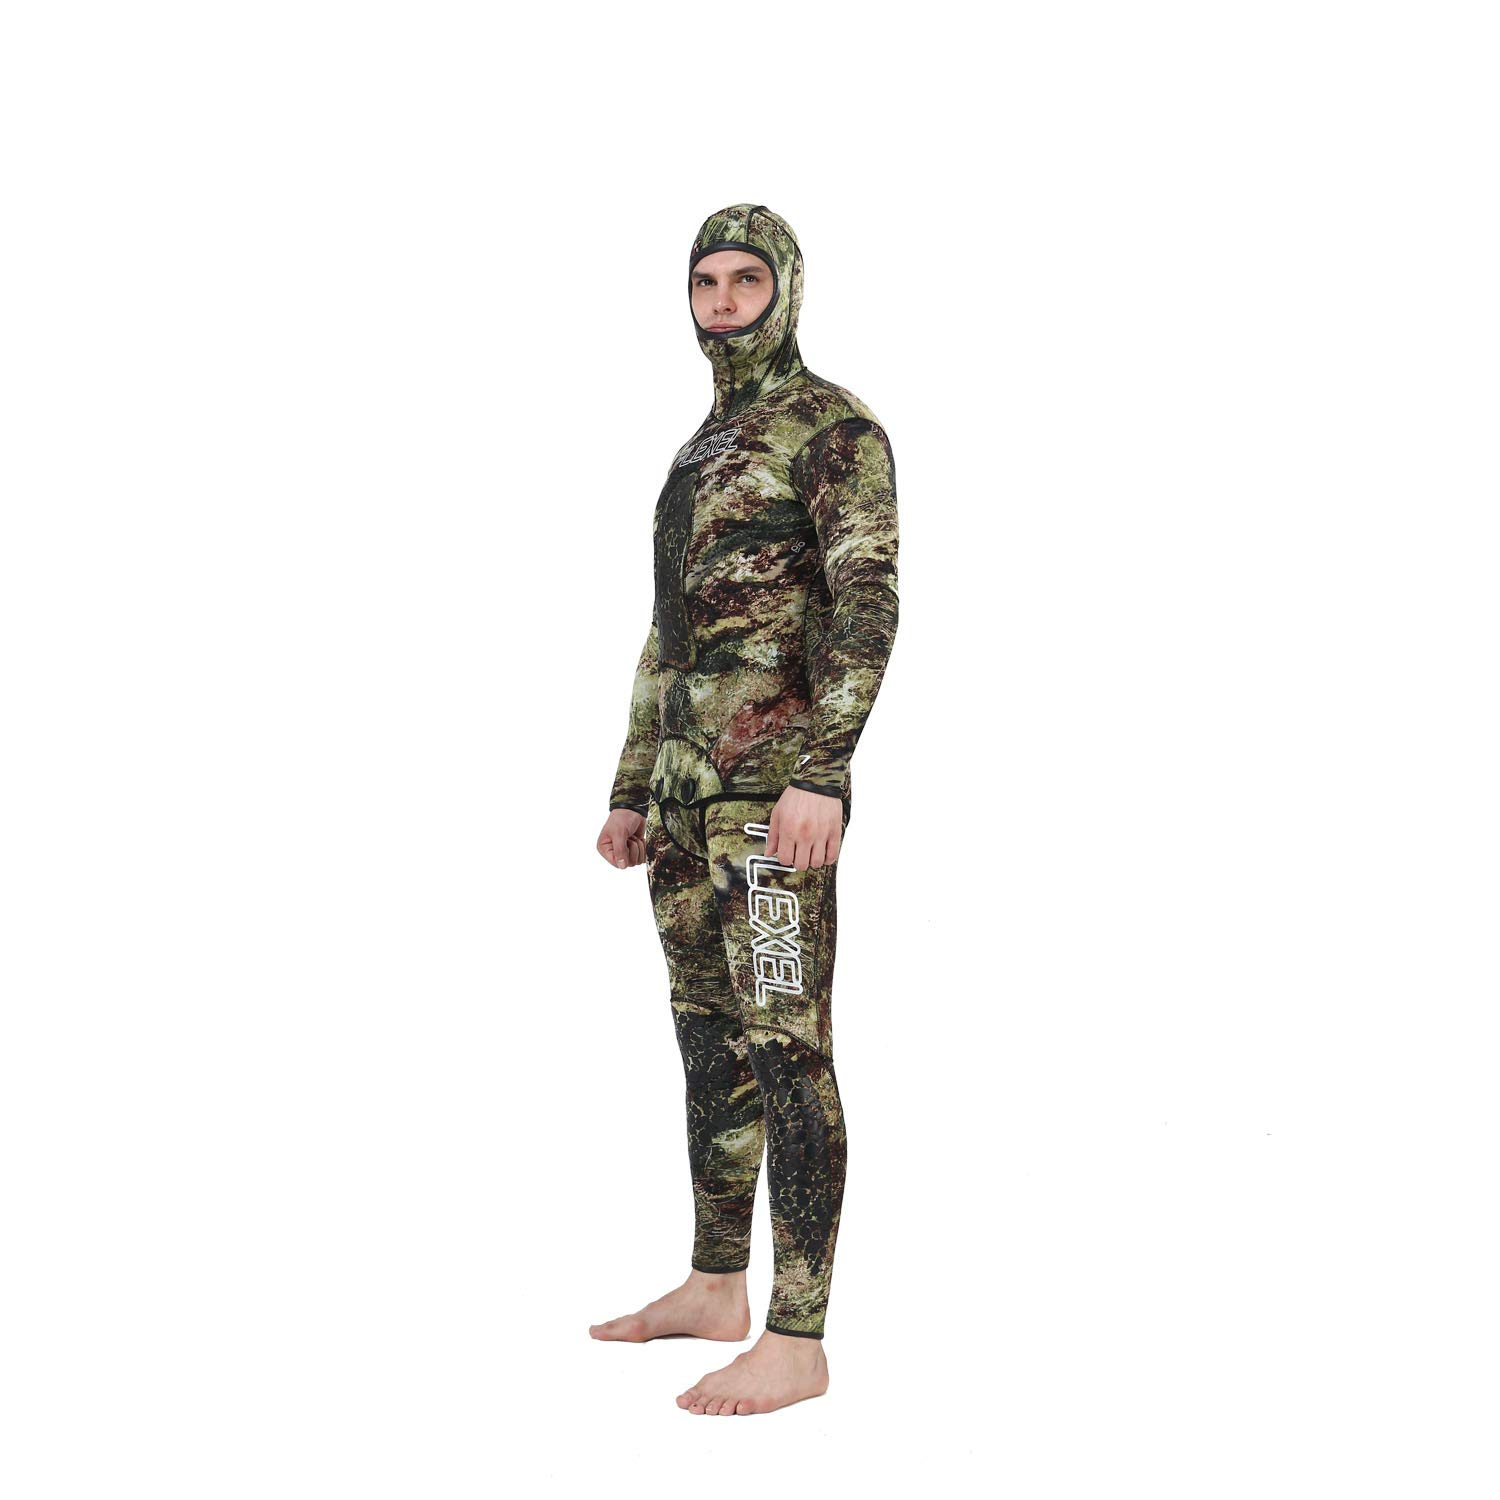 Flexel Camo Spearfishing Wetsuits Men Premium Camouflage Neoprene 2-Pieces Hoodie Freediving Fullsuit for Scuba Diving Snorkeling Swimming (7mm Grass camo, Large) by Flexel (Image #7)